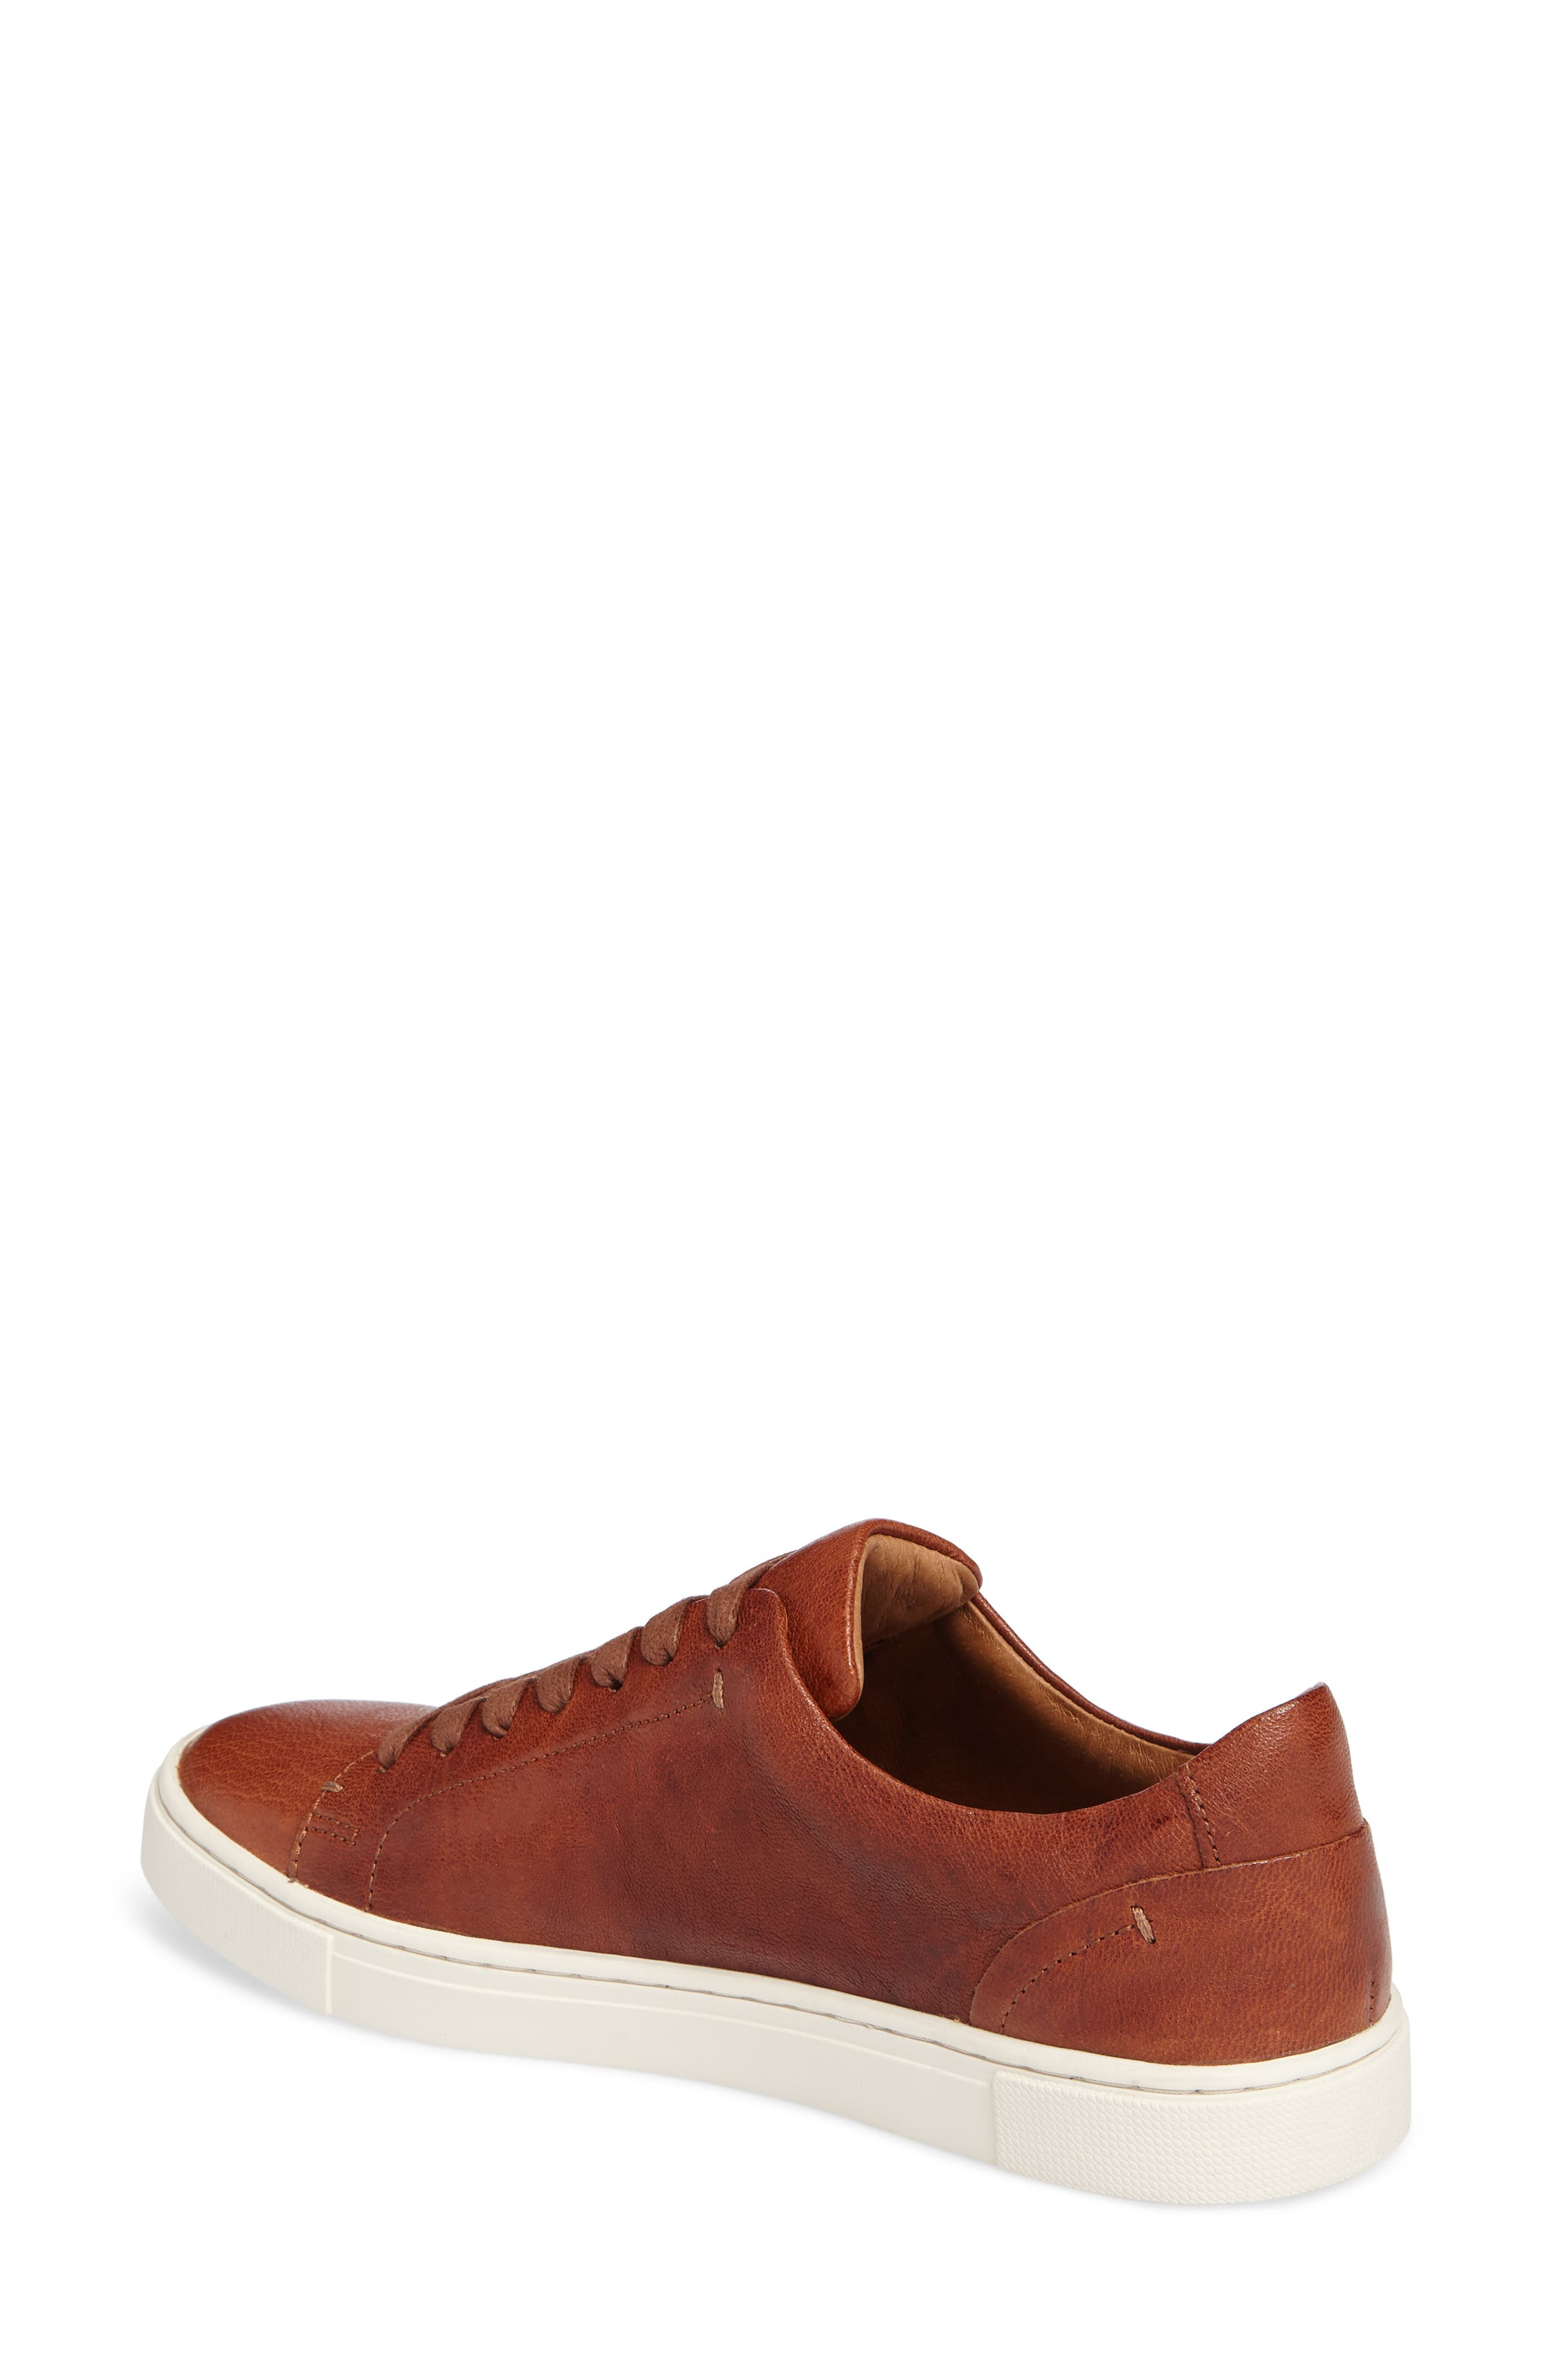 Ivy Sneaker,                             Alternate thumbnail 2, color,                             Cognac